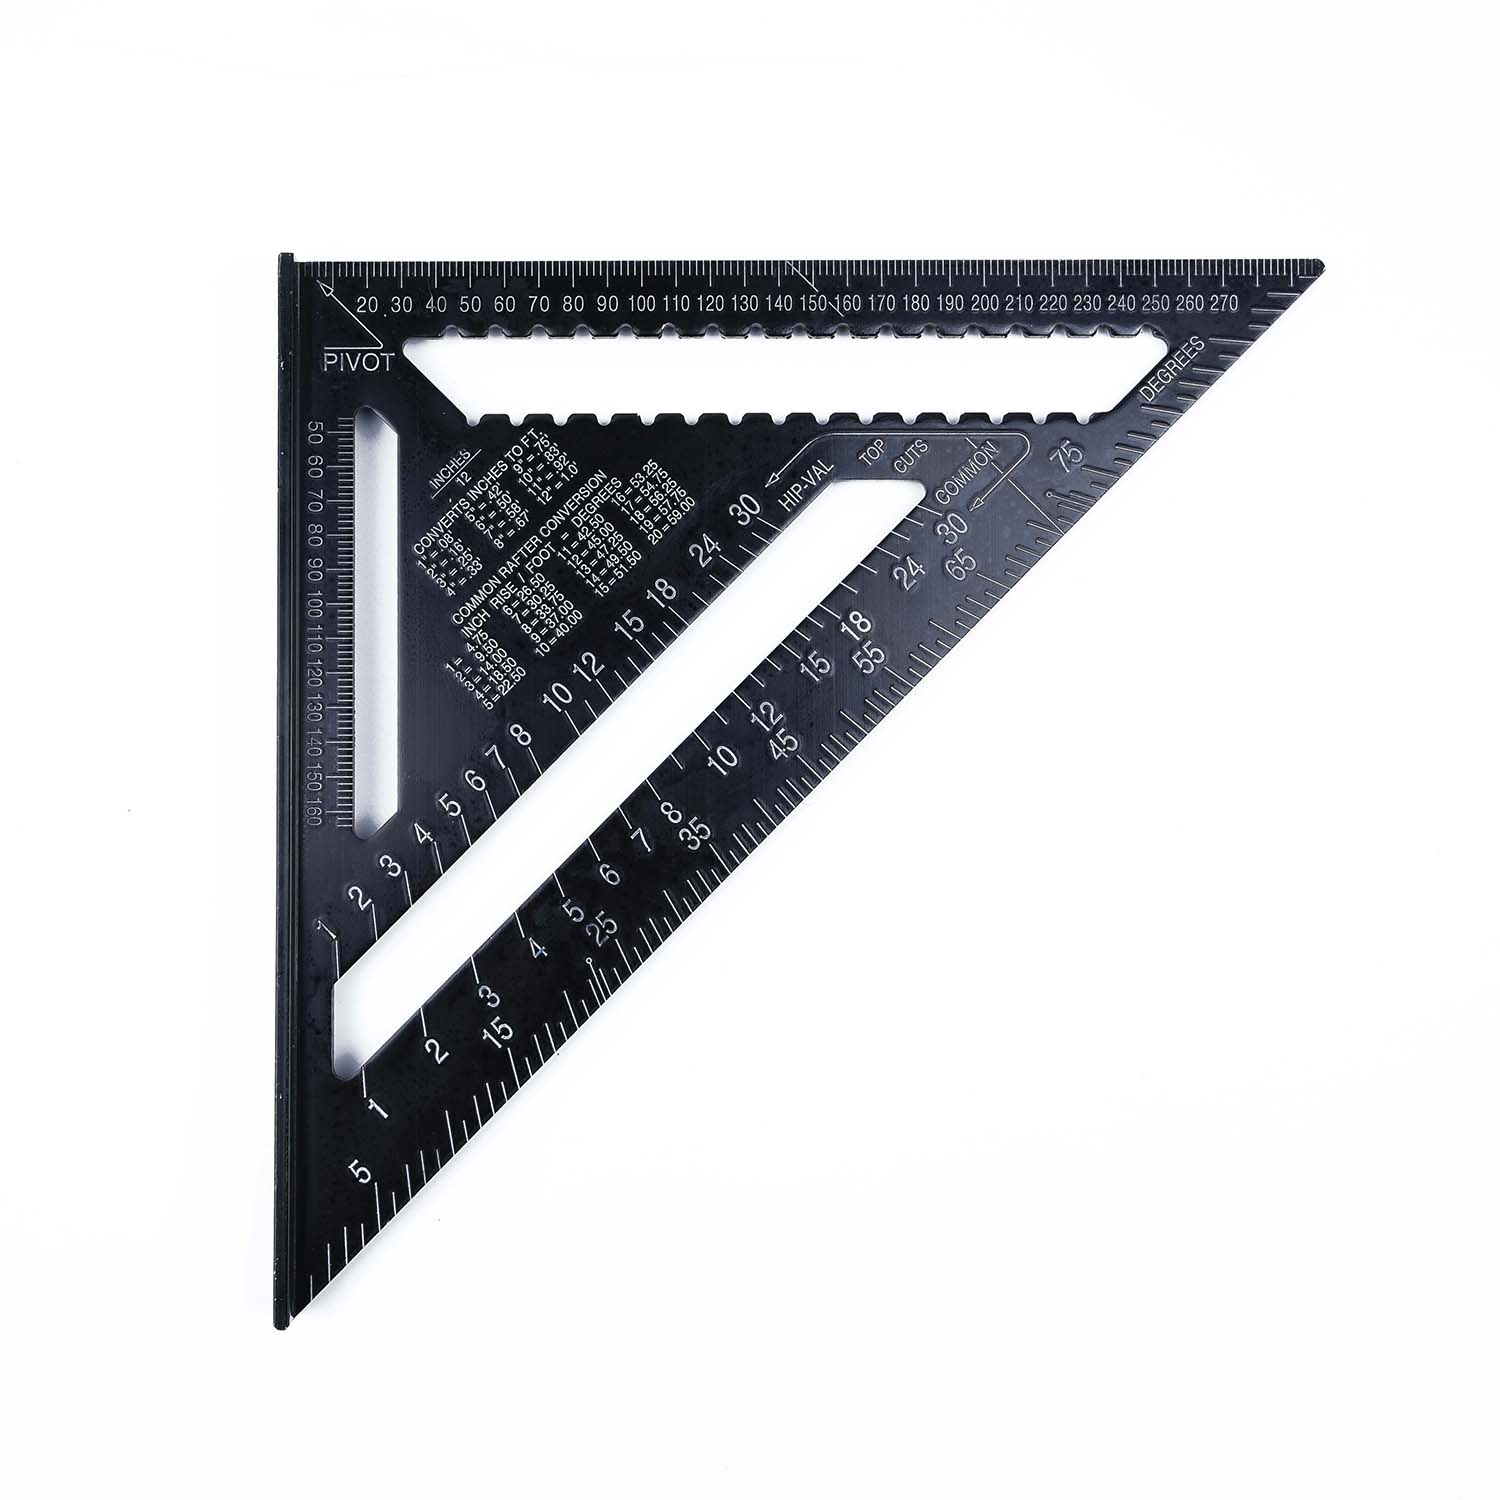 1PC Metric System Triangle Ruler Angle Square Building Protractor Miter Aluminum Alloy Multi-functional Durable 300mm / 12 Inch